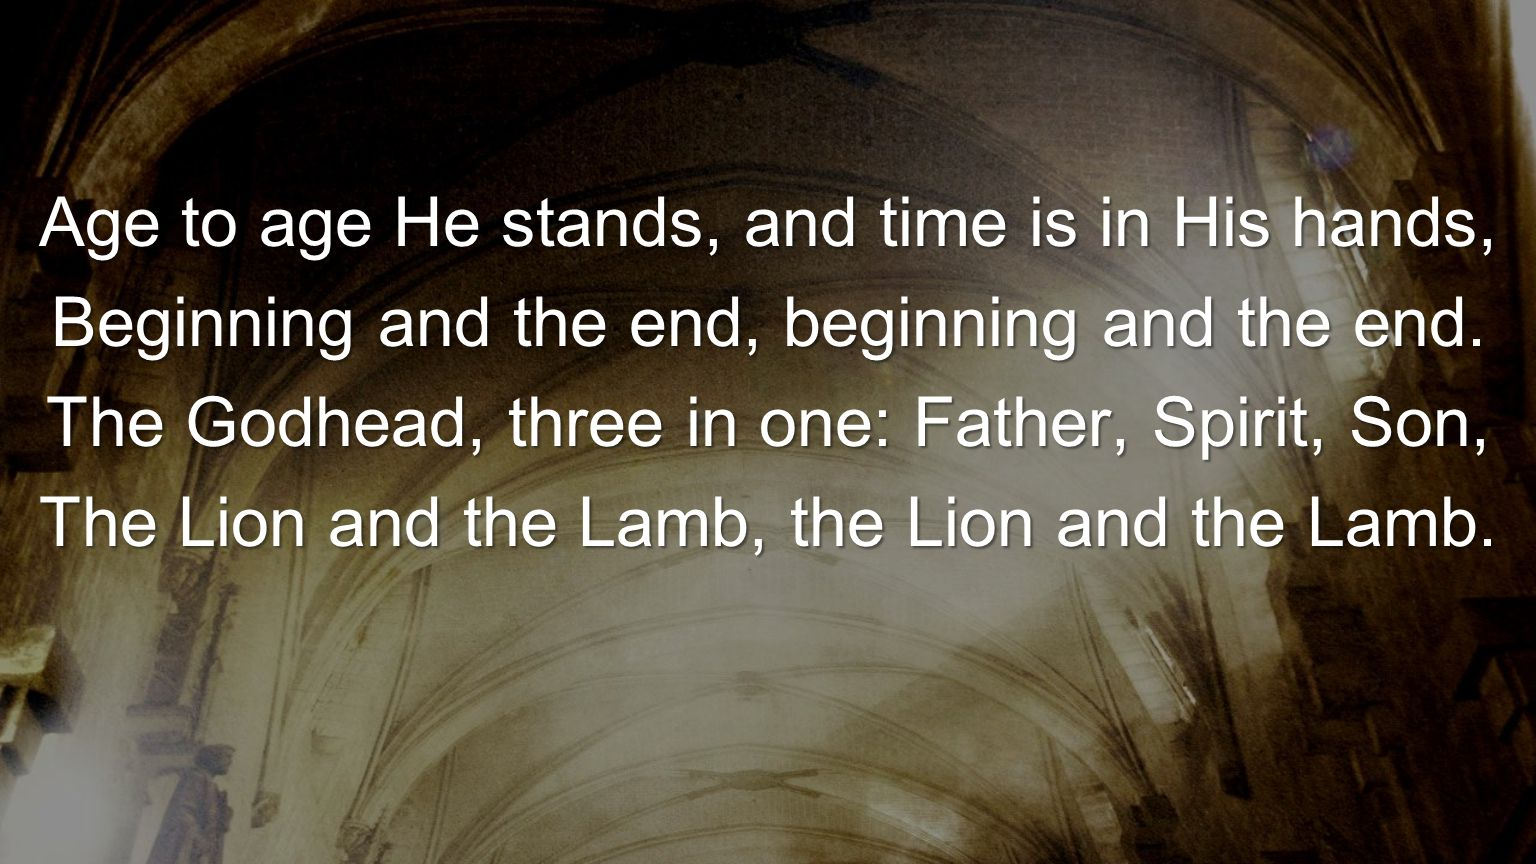 Age to age He stands, and time is in His hands, Beginning and the end, beginning and the end. The Godhead, three in one: Father, Spirit, Son, The Lion